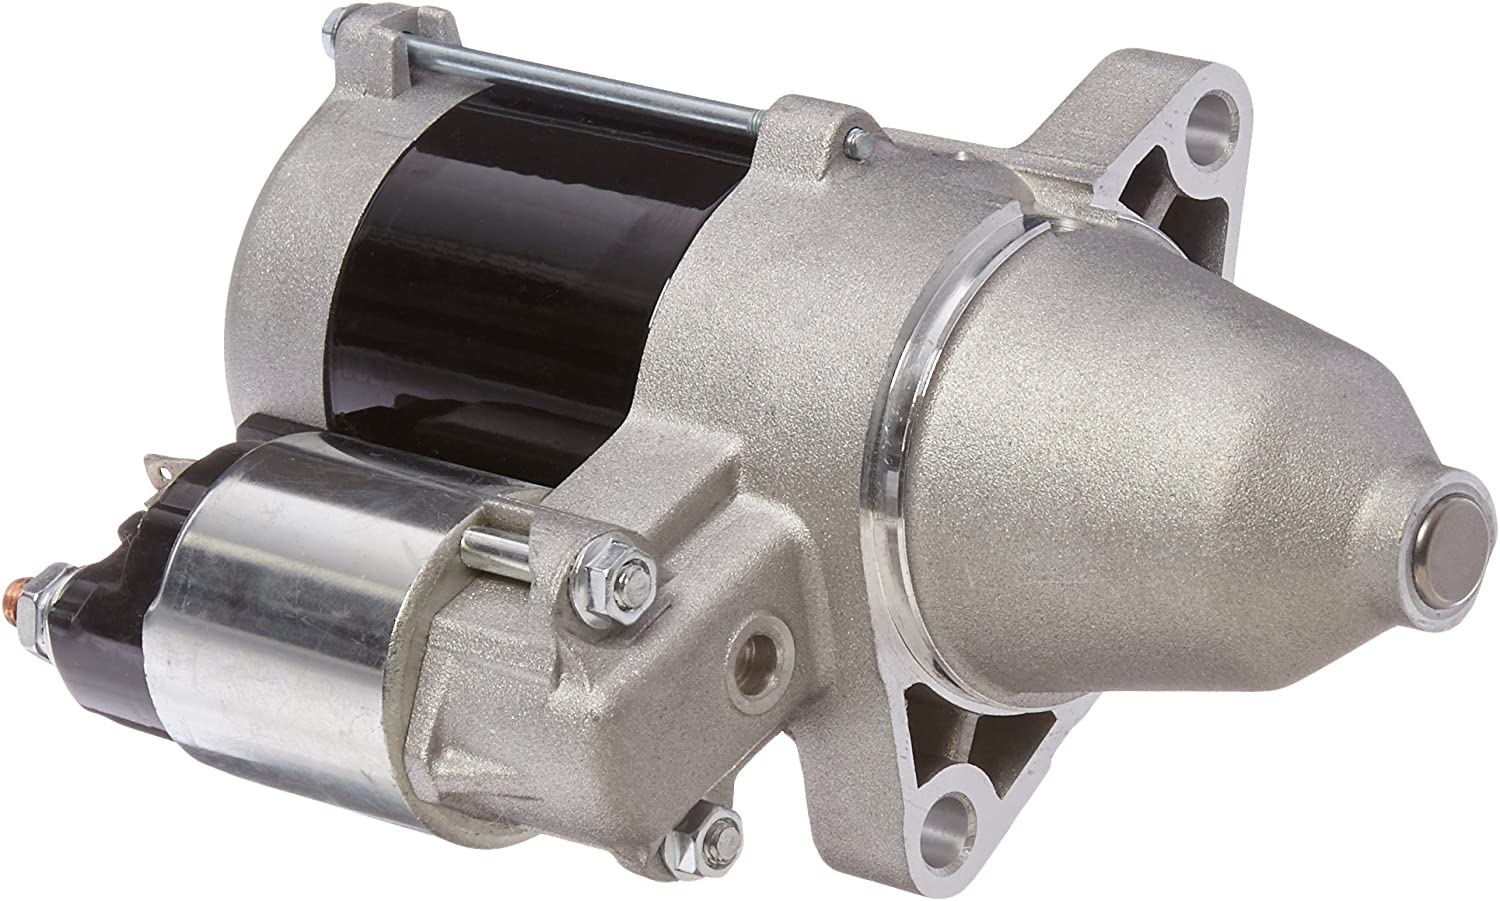 DB Electrical SND0529 Starter for Briggs & Stratton Air Cooled Vanguard V-Twin /807383 809054 845760/428000-0230/12 Volts, CCW